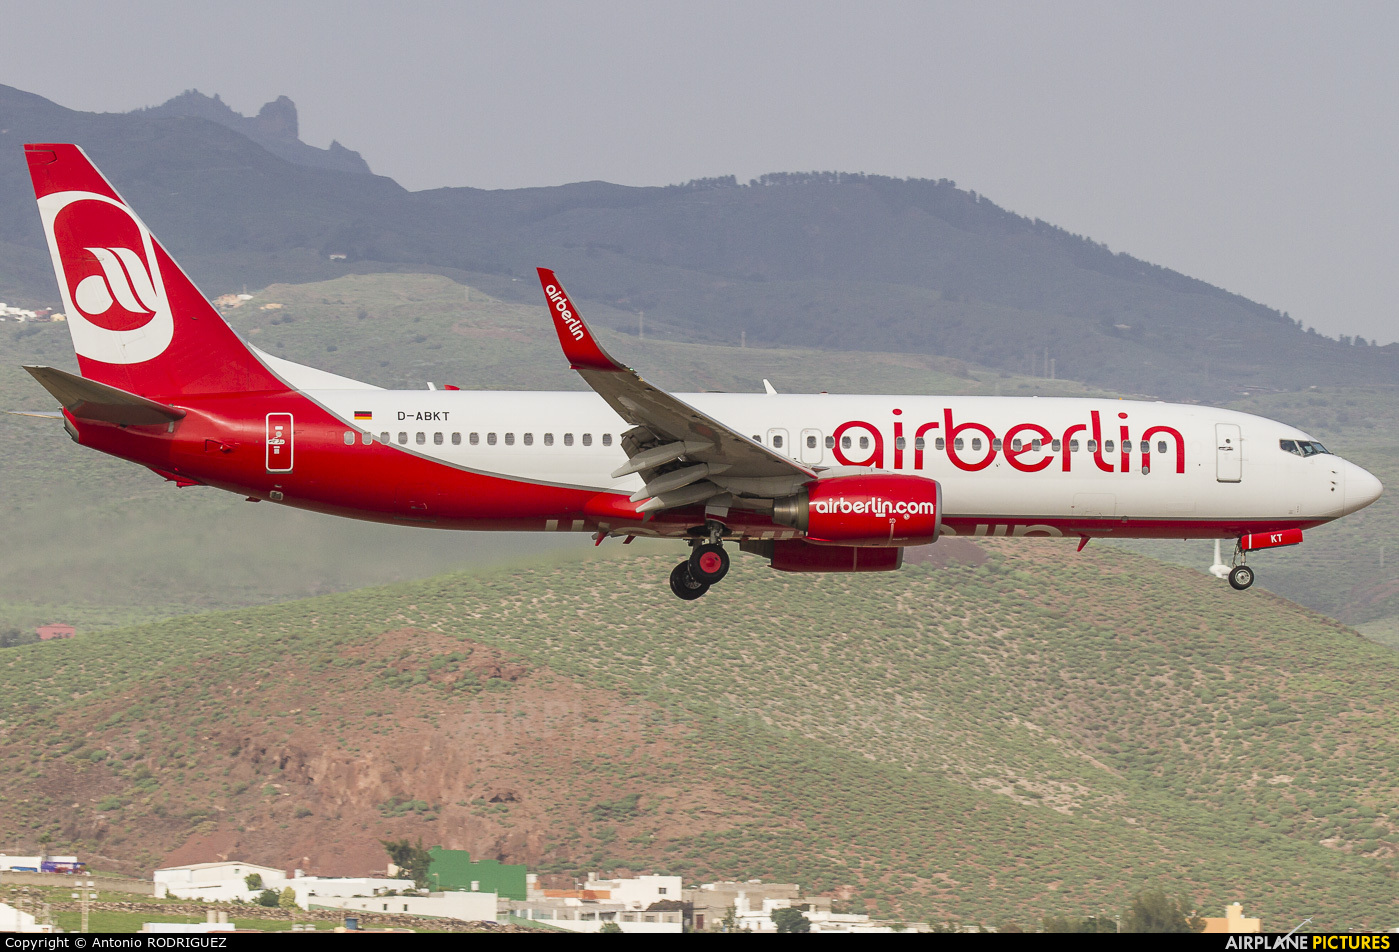 Air Berlin D-ABKT aircraft at Las Palmas de Gran Canaria